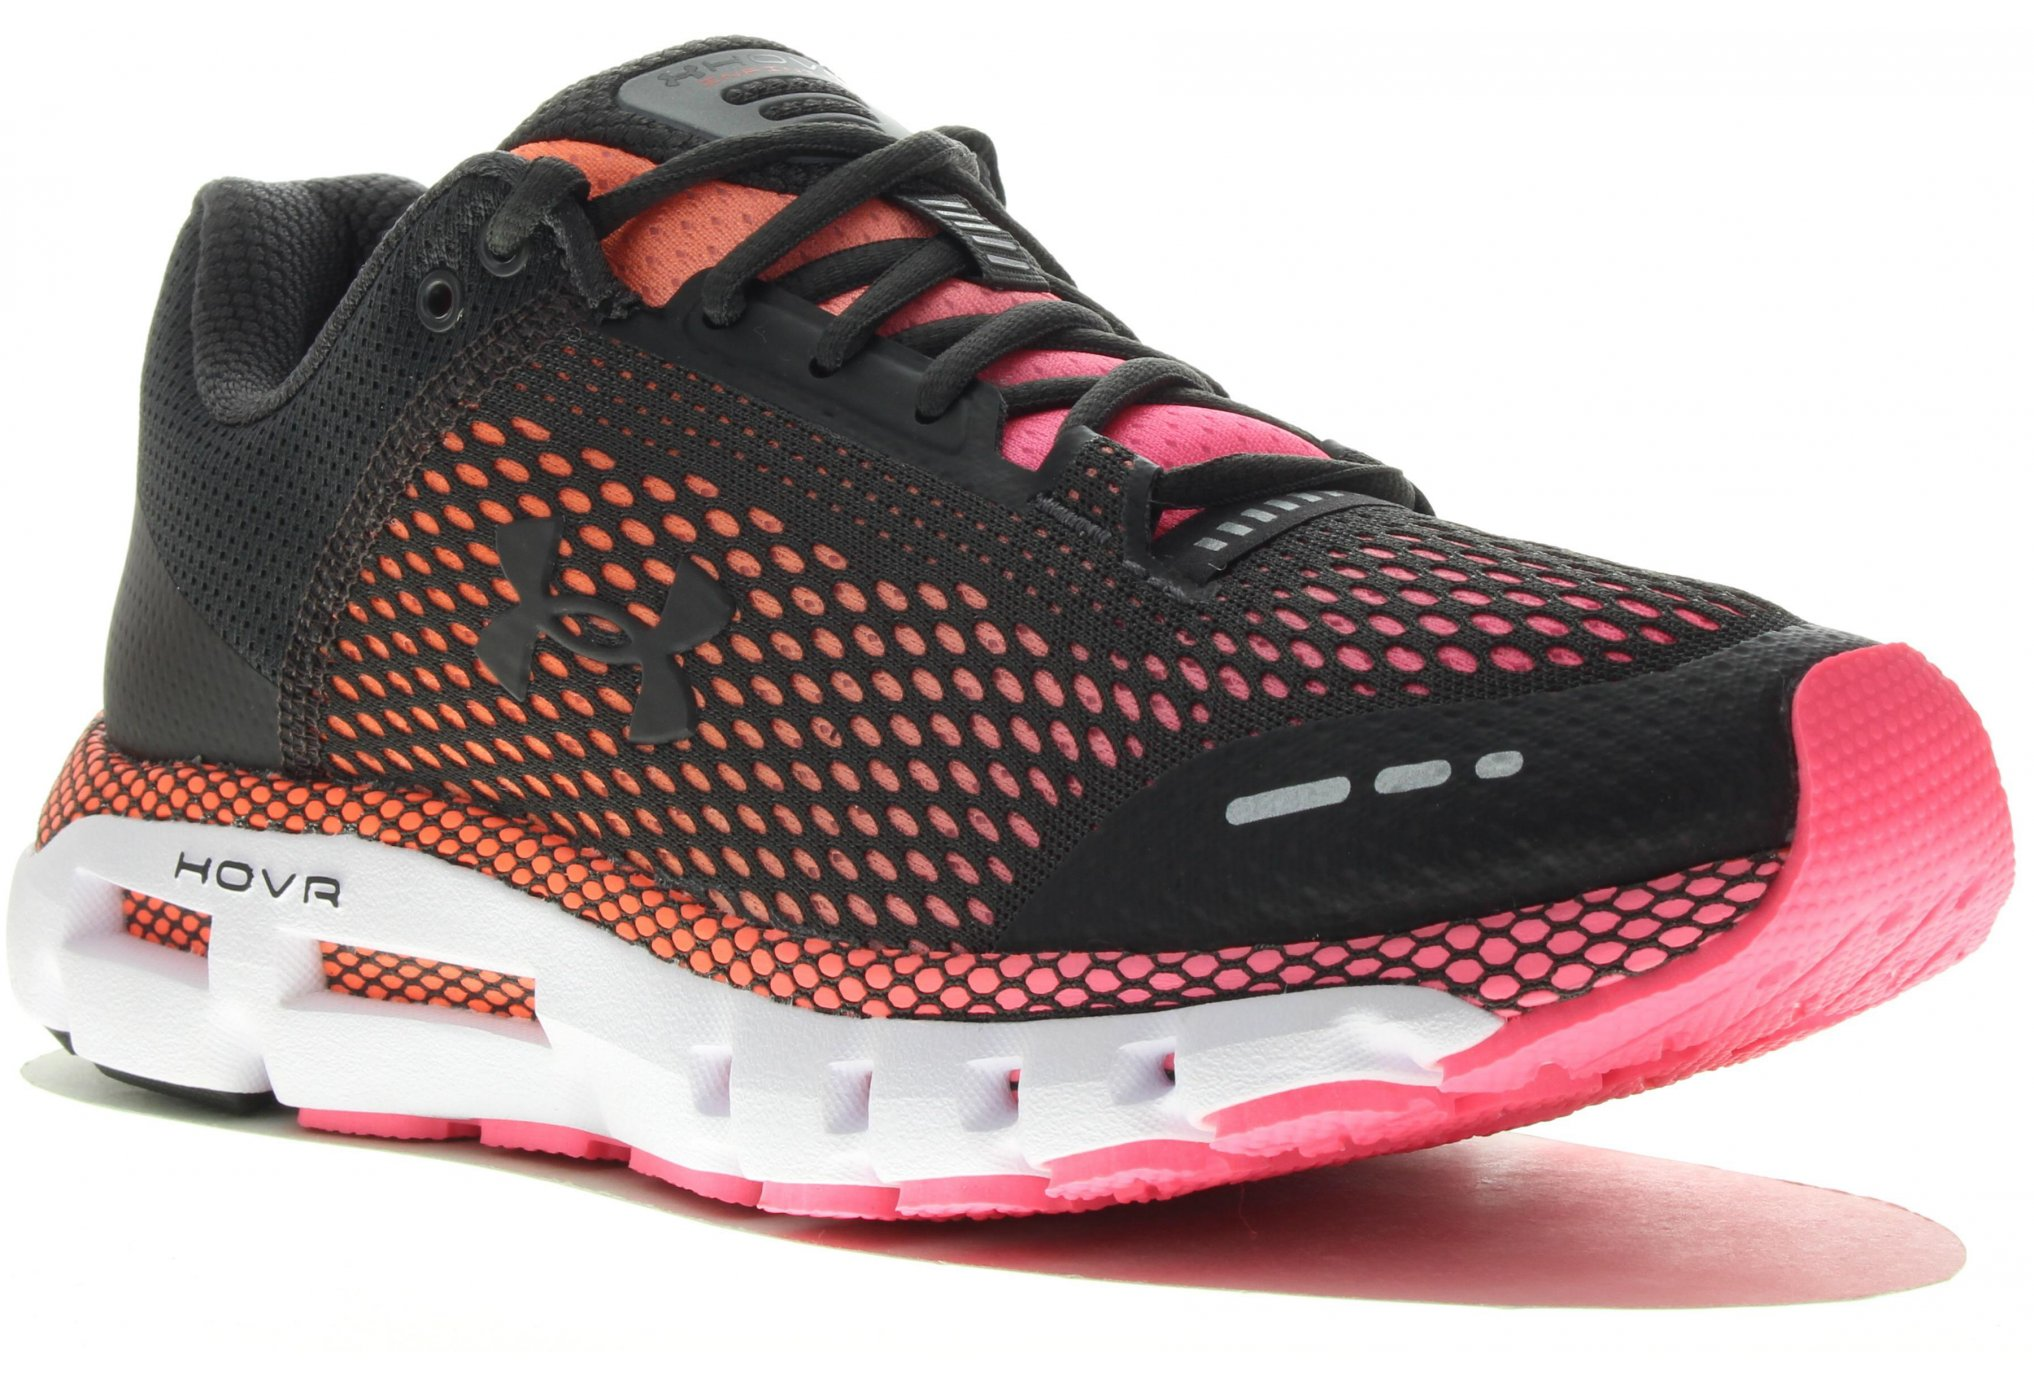 Under Armour HOVR Infinite Chaussures running femme